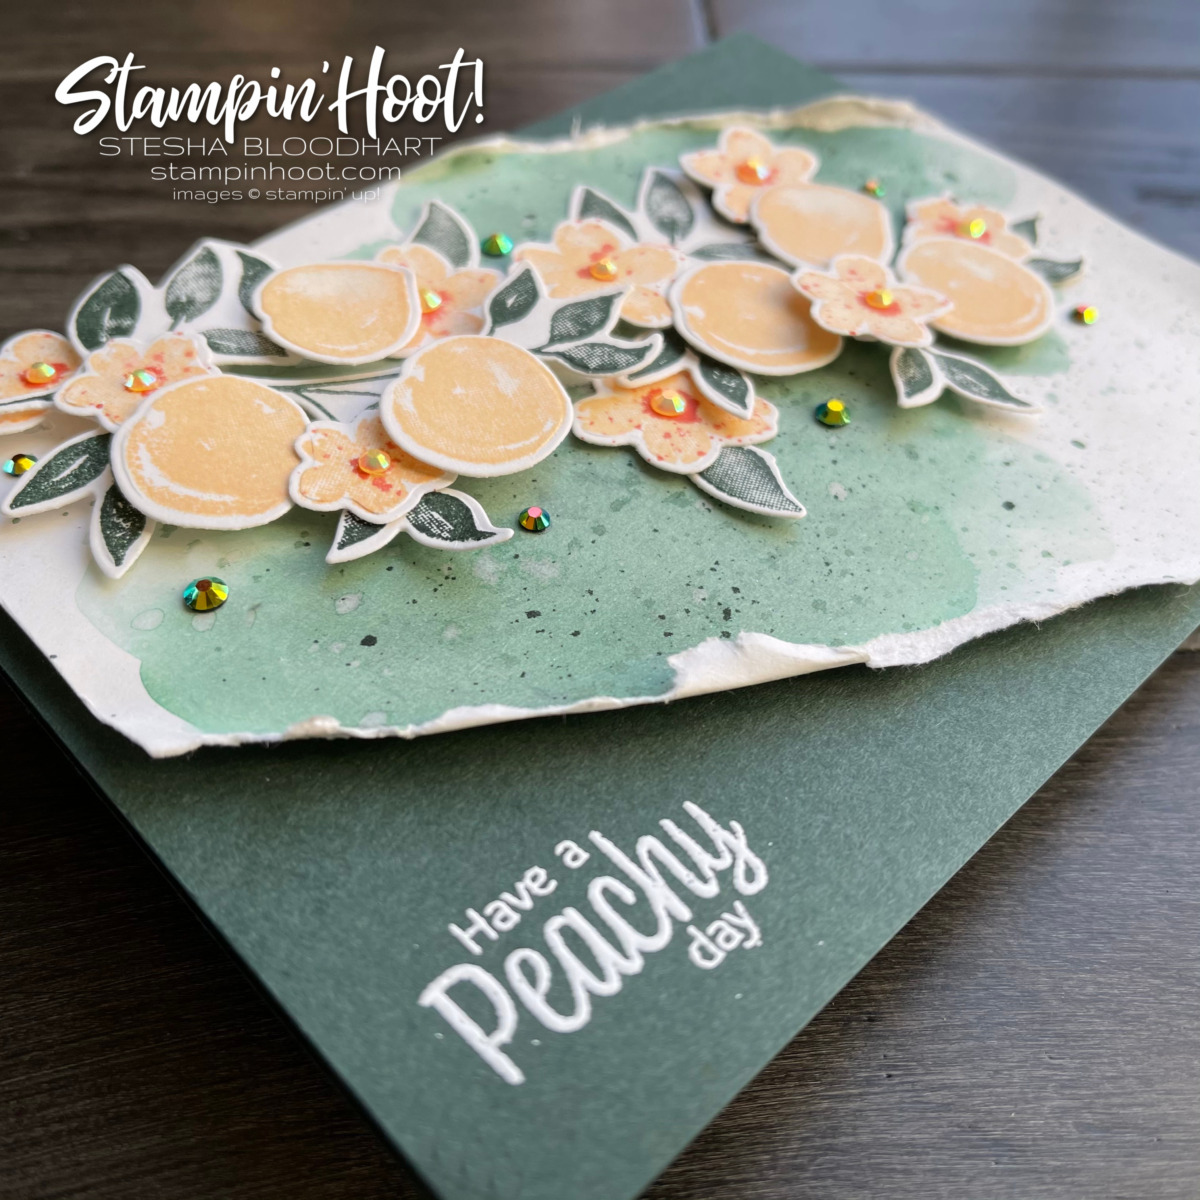 You're a Peach Suite Collection from Stampin' Up! Have a Peachy Day Card by Stesha Bloodhart, Stampin' Hoot! Pals Blog Hop In Color